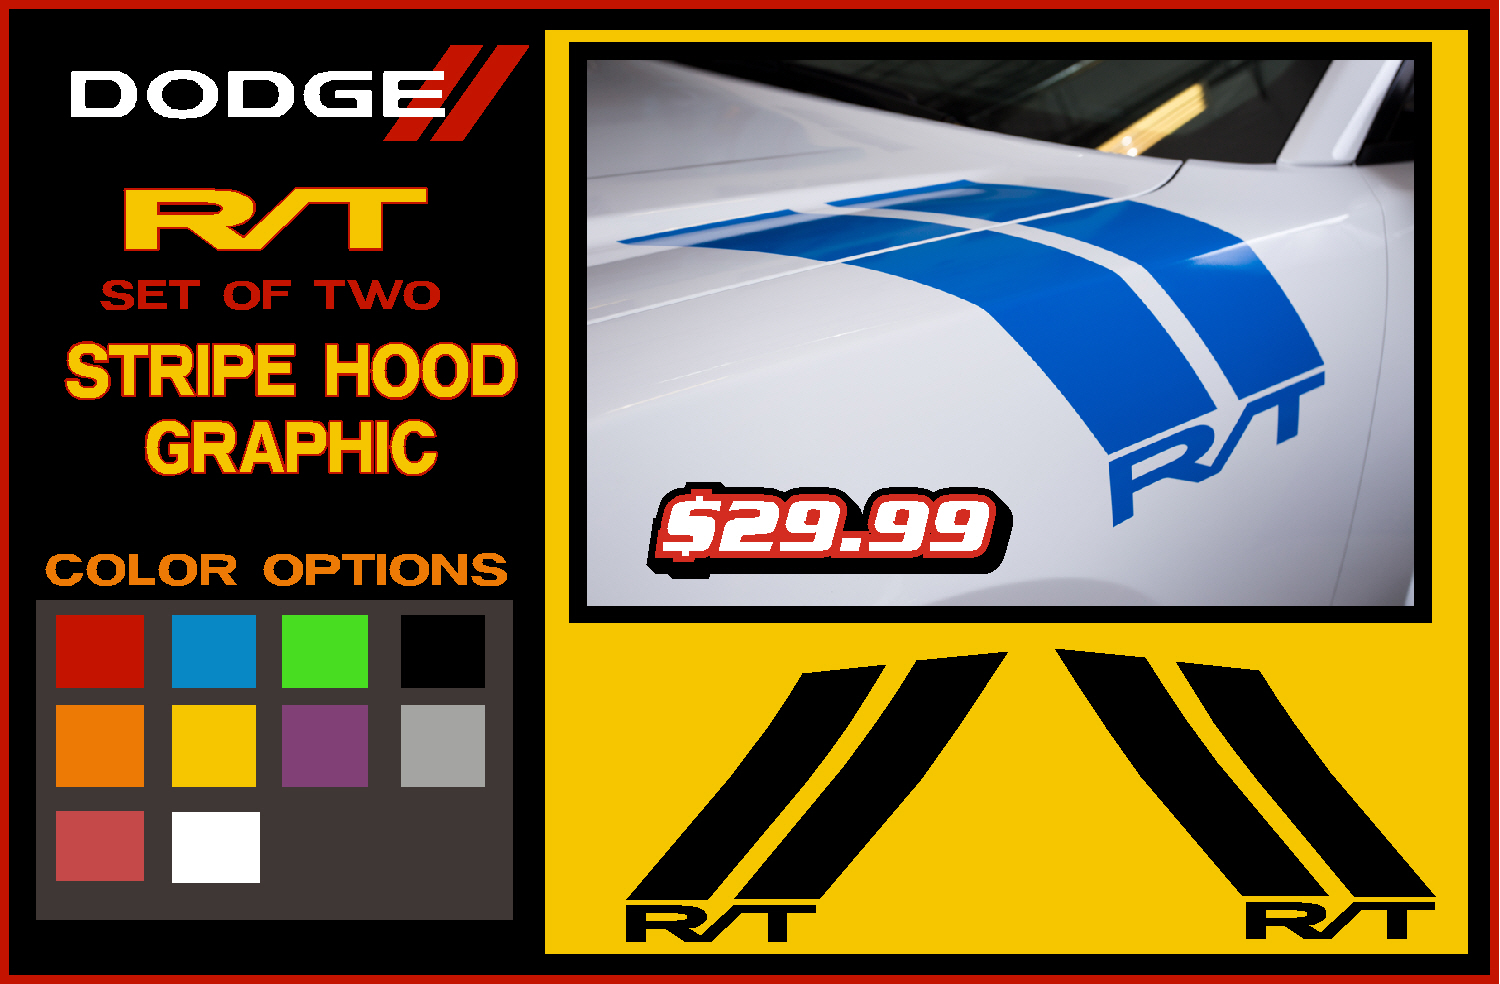 Dodge Hood Fender Stripes Challenger / Charger RAM RT Vinyl Decal Hemi Decals